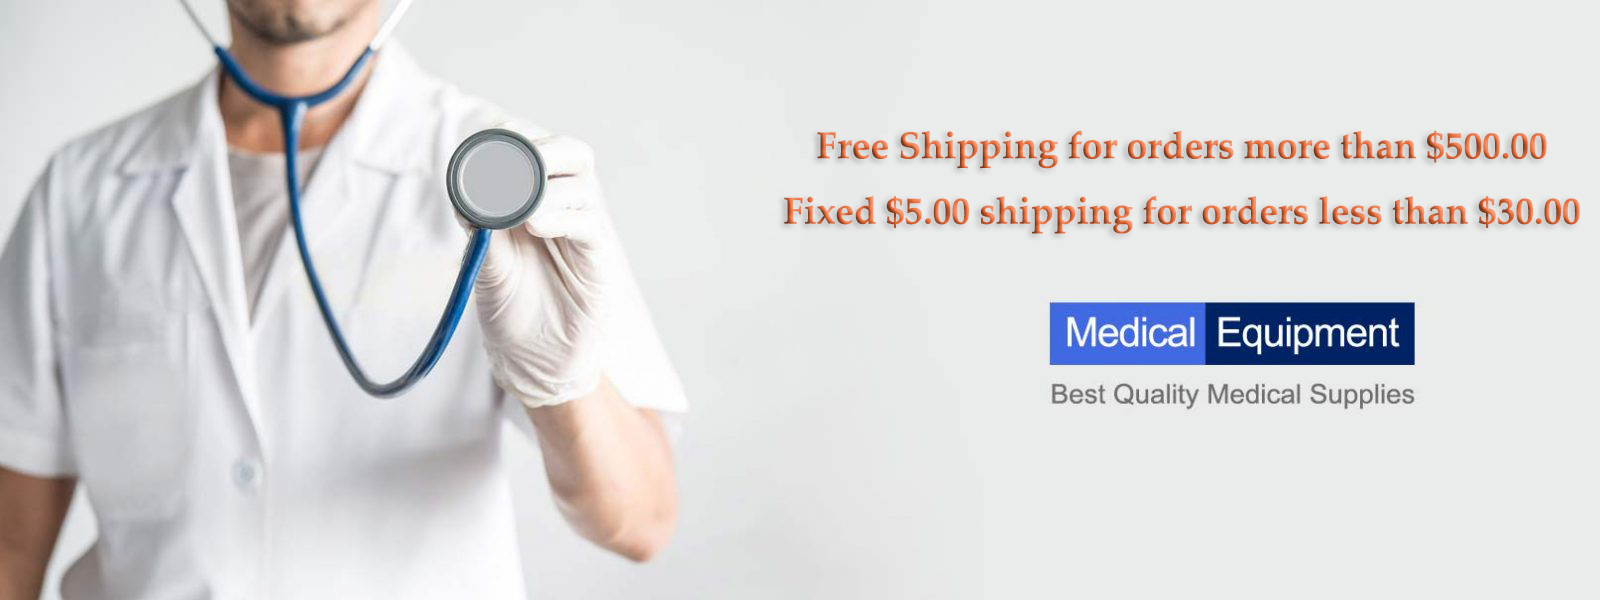 Best Quality Medical Supplies Free Shipping